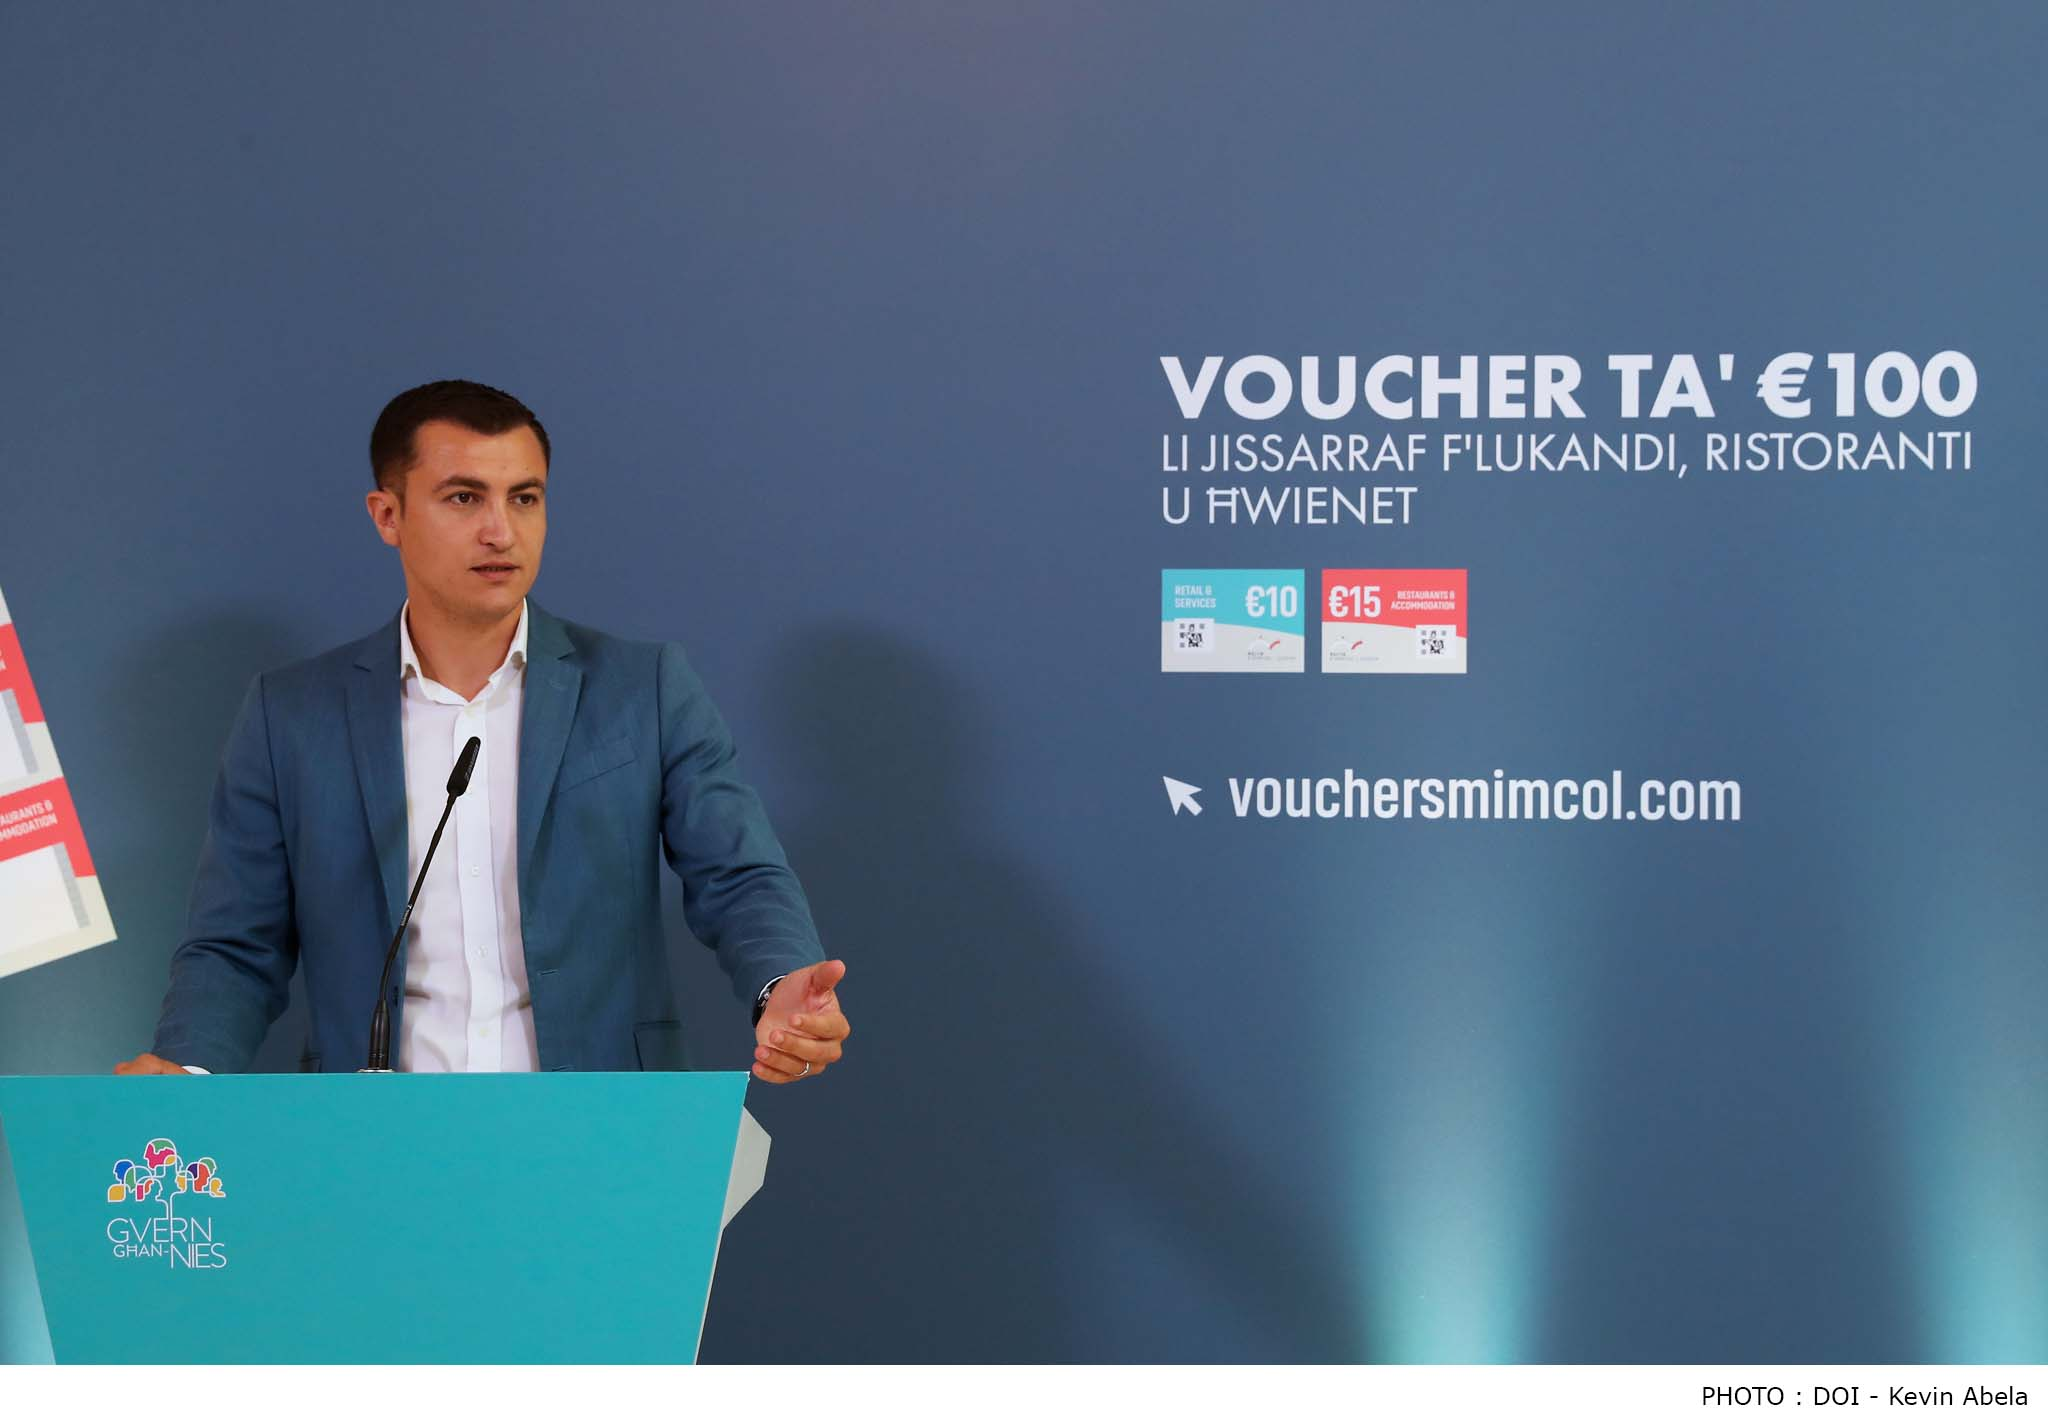 PRESS RELEASE BY THE MINISTRY FOR THE ECONOMY AND INDUSTRY Around €1.5 million injected into the economy during the first week of use of the €100 government vouchers